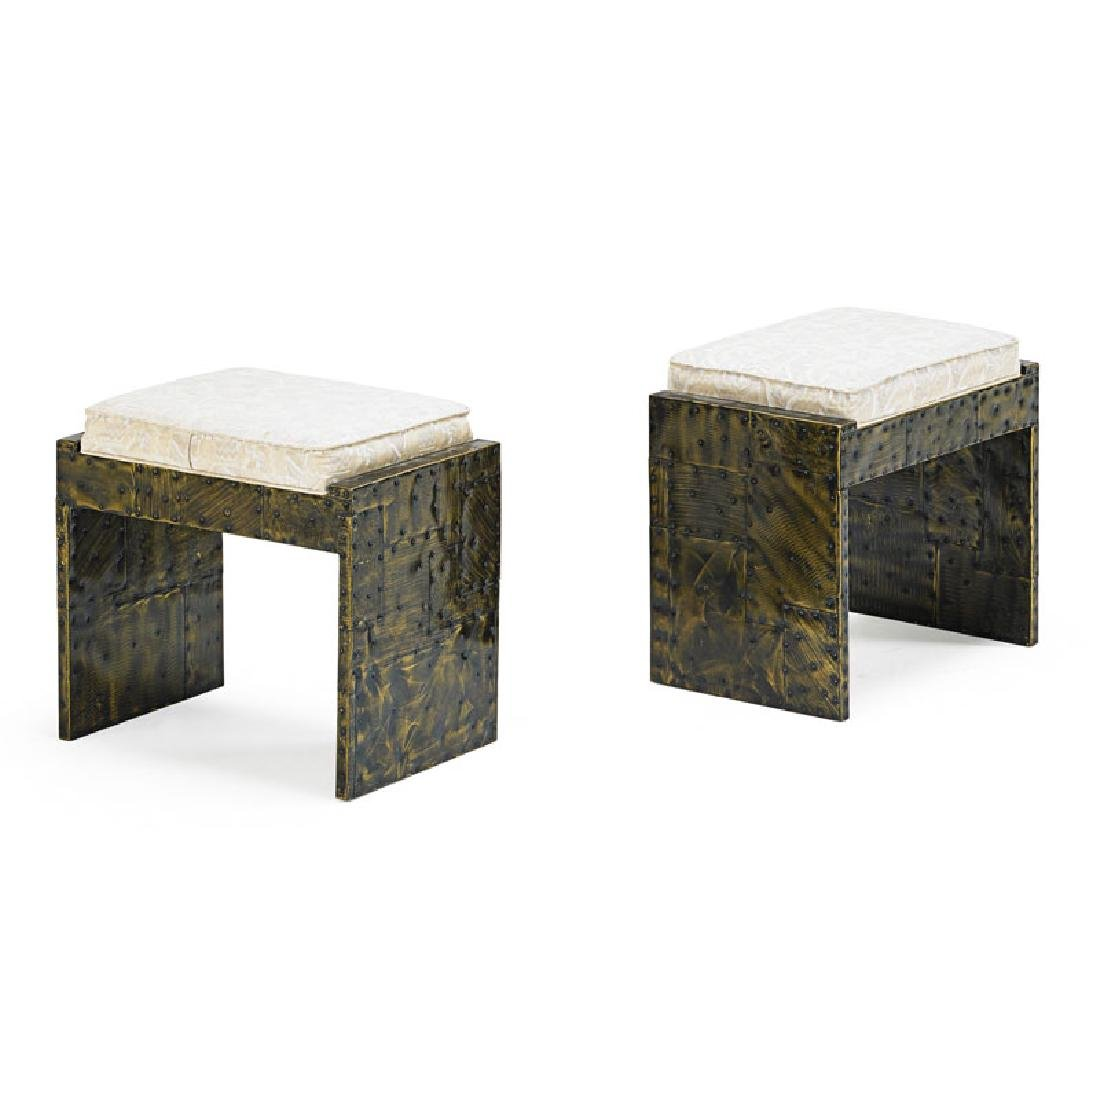 PAUL EVANS Pair of Patchwork benches